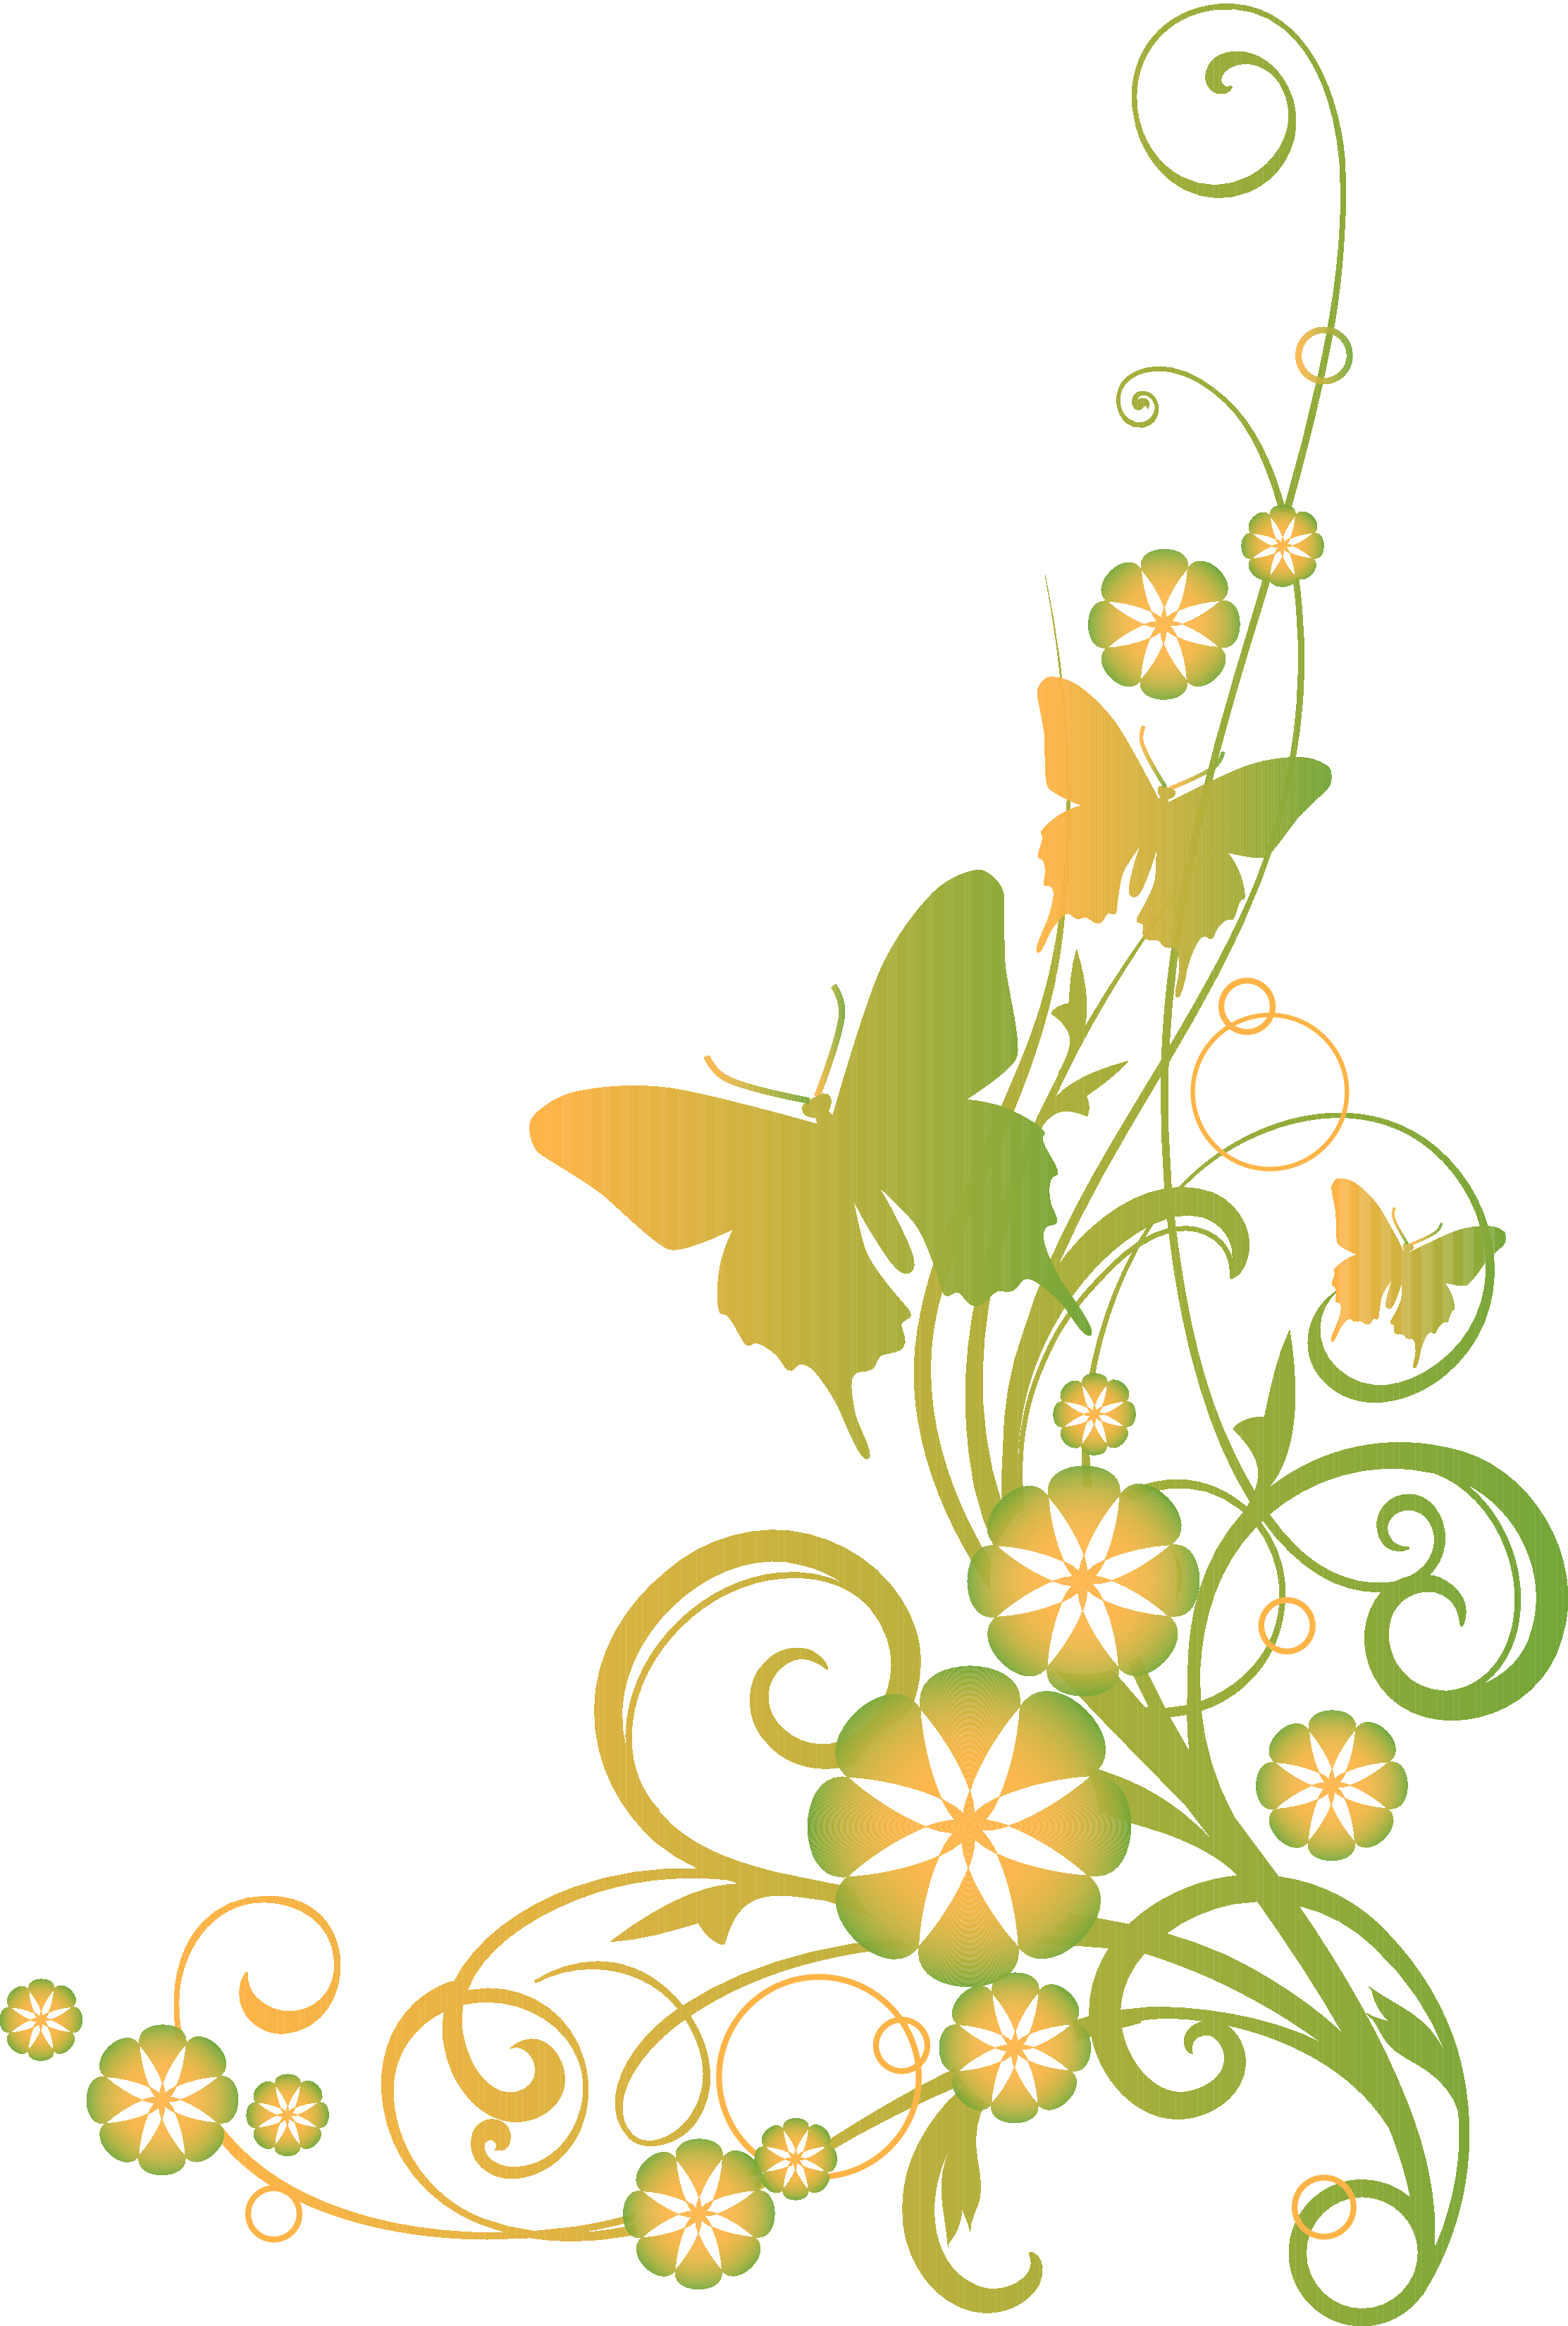 religious clip art vines and butterflies christian clipart rh pinterest com Holiday Background Clip Art Christian Art Backgrounds